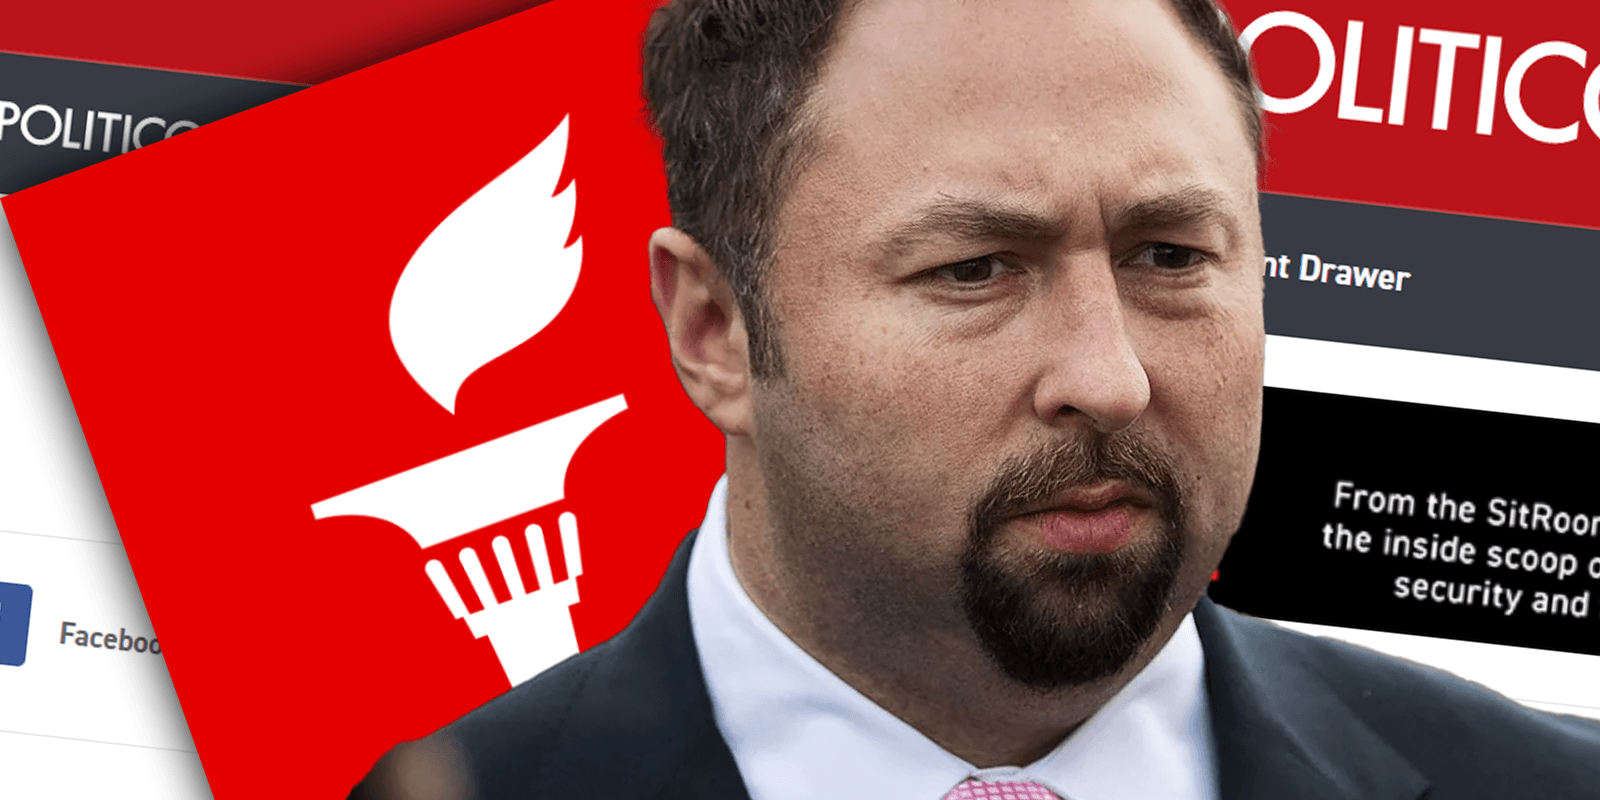 GETTR founder Jason Miller hits back at Politico 'hit piece' over extremist content